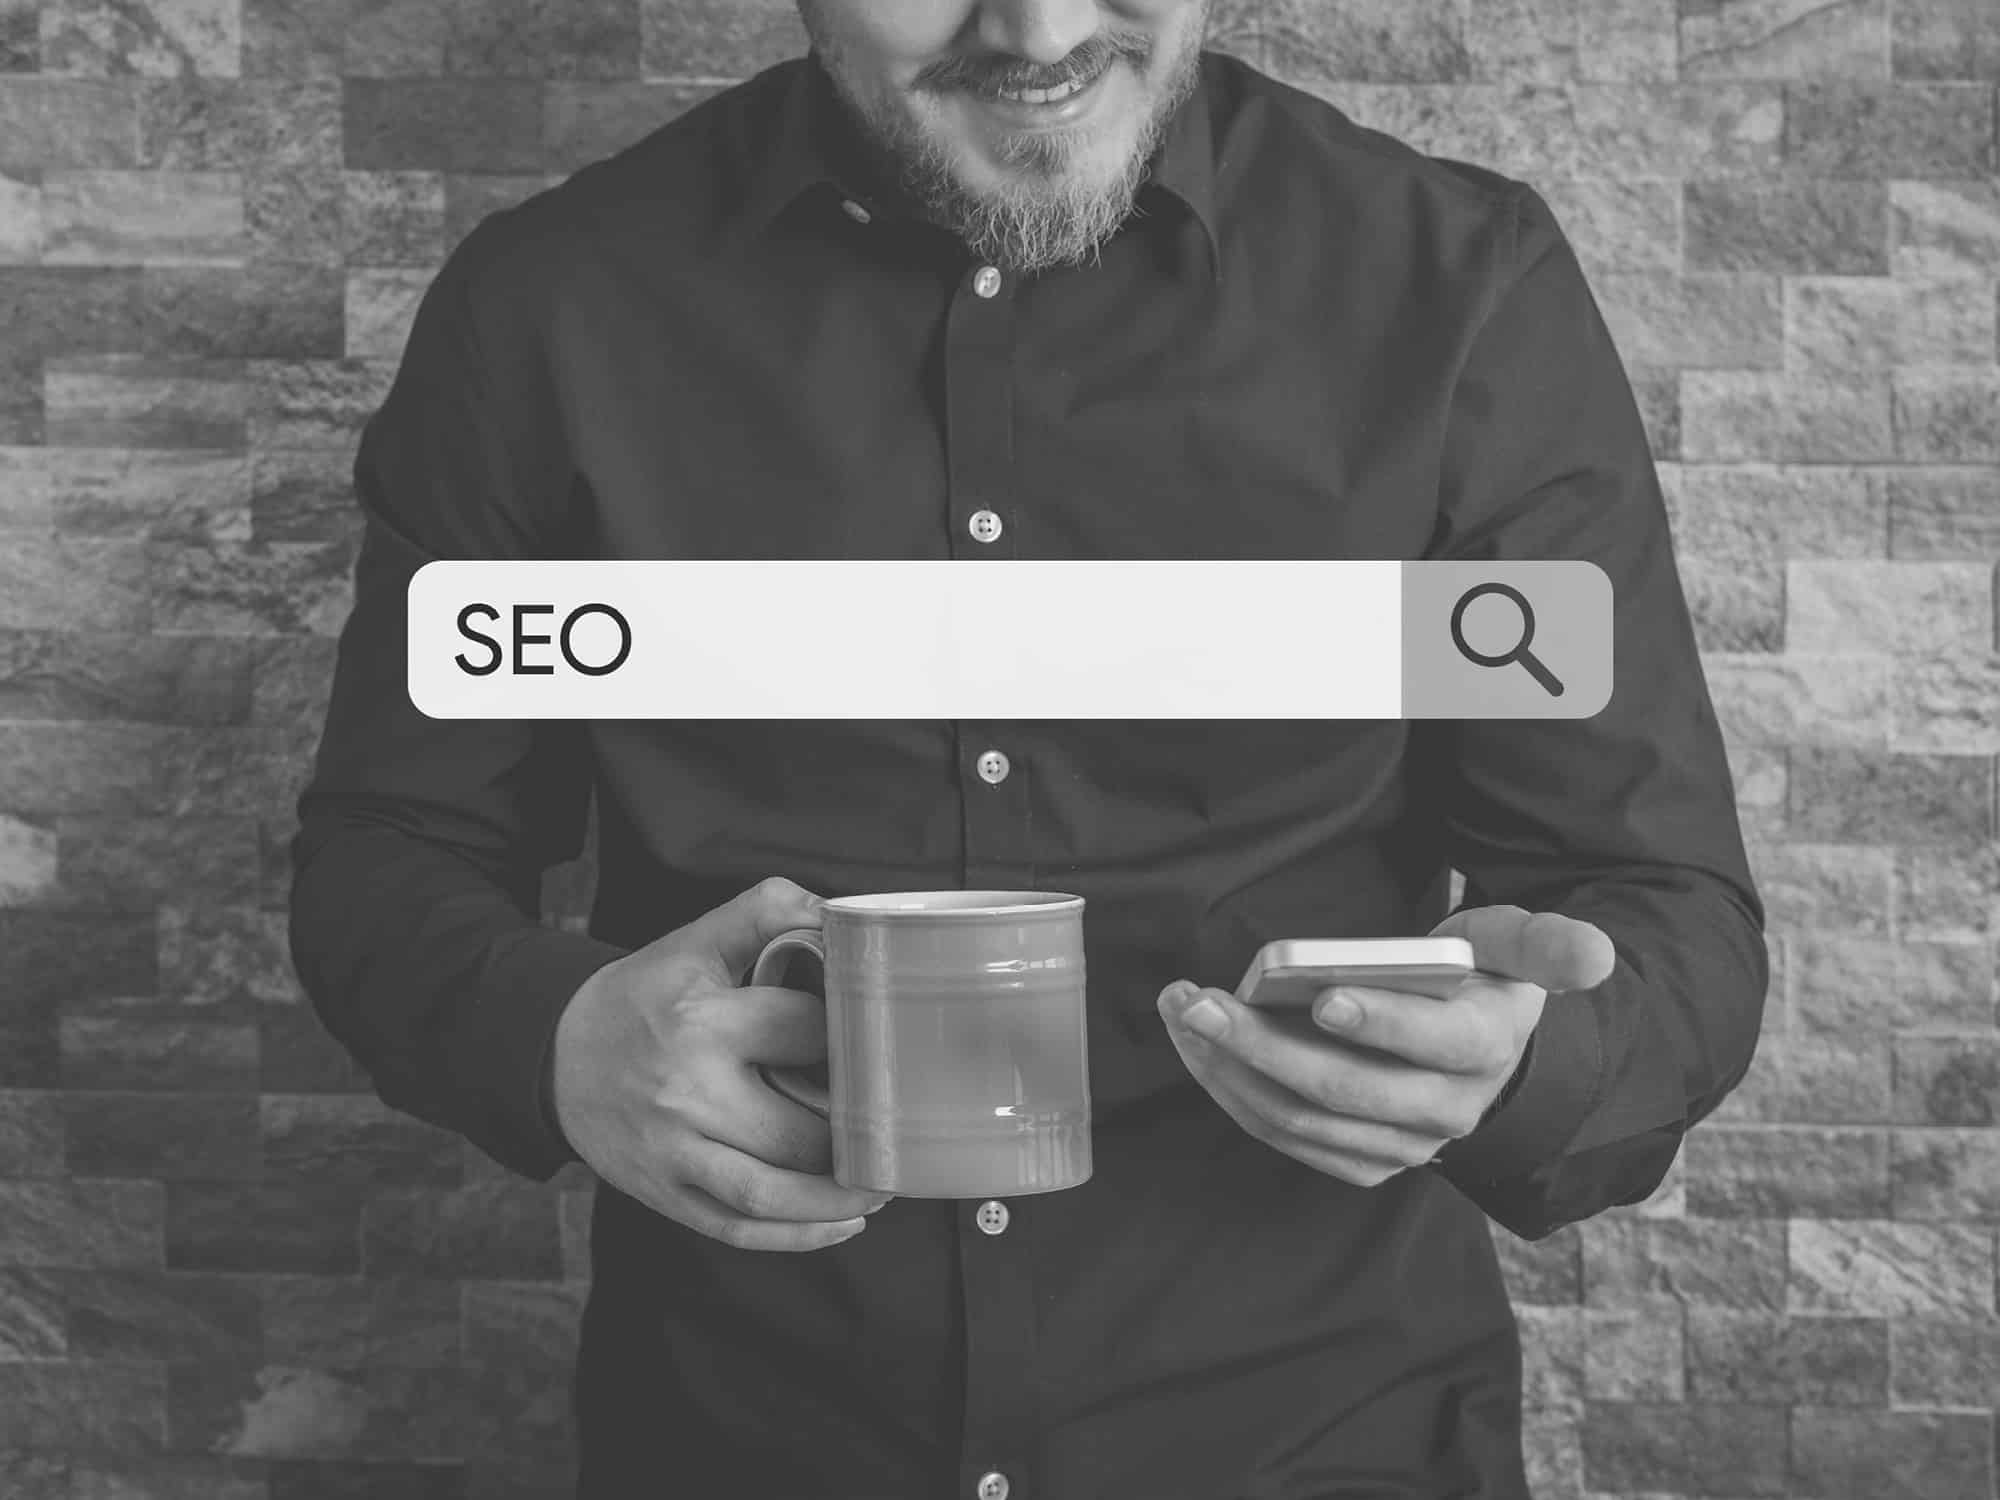 man on phone with search box reading SEO black and white image